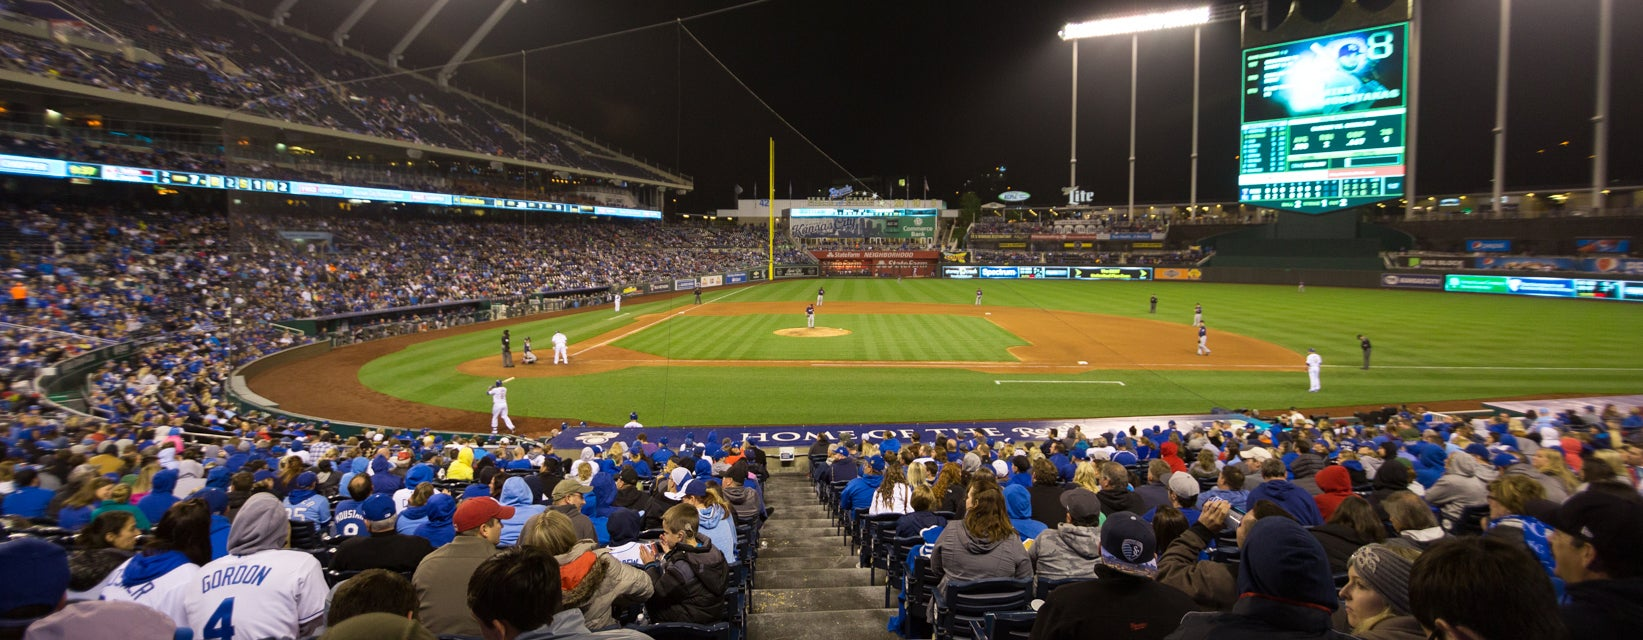 Seat view from Dugout Box